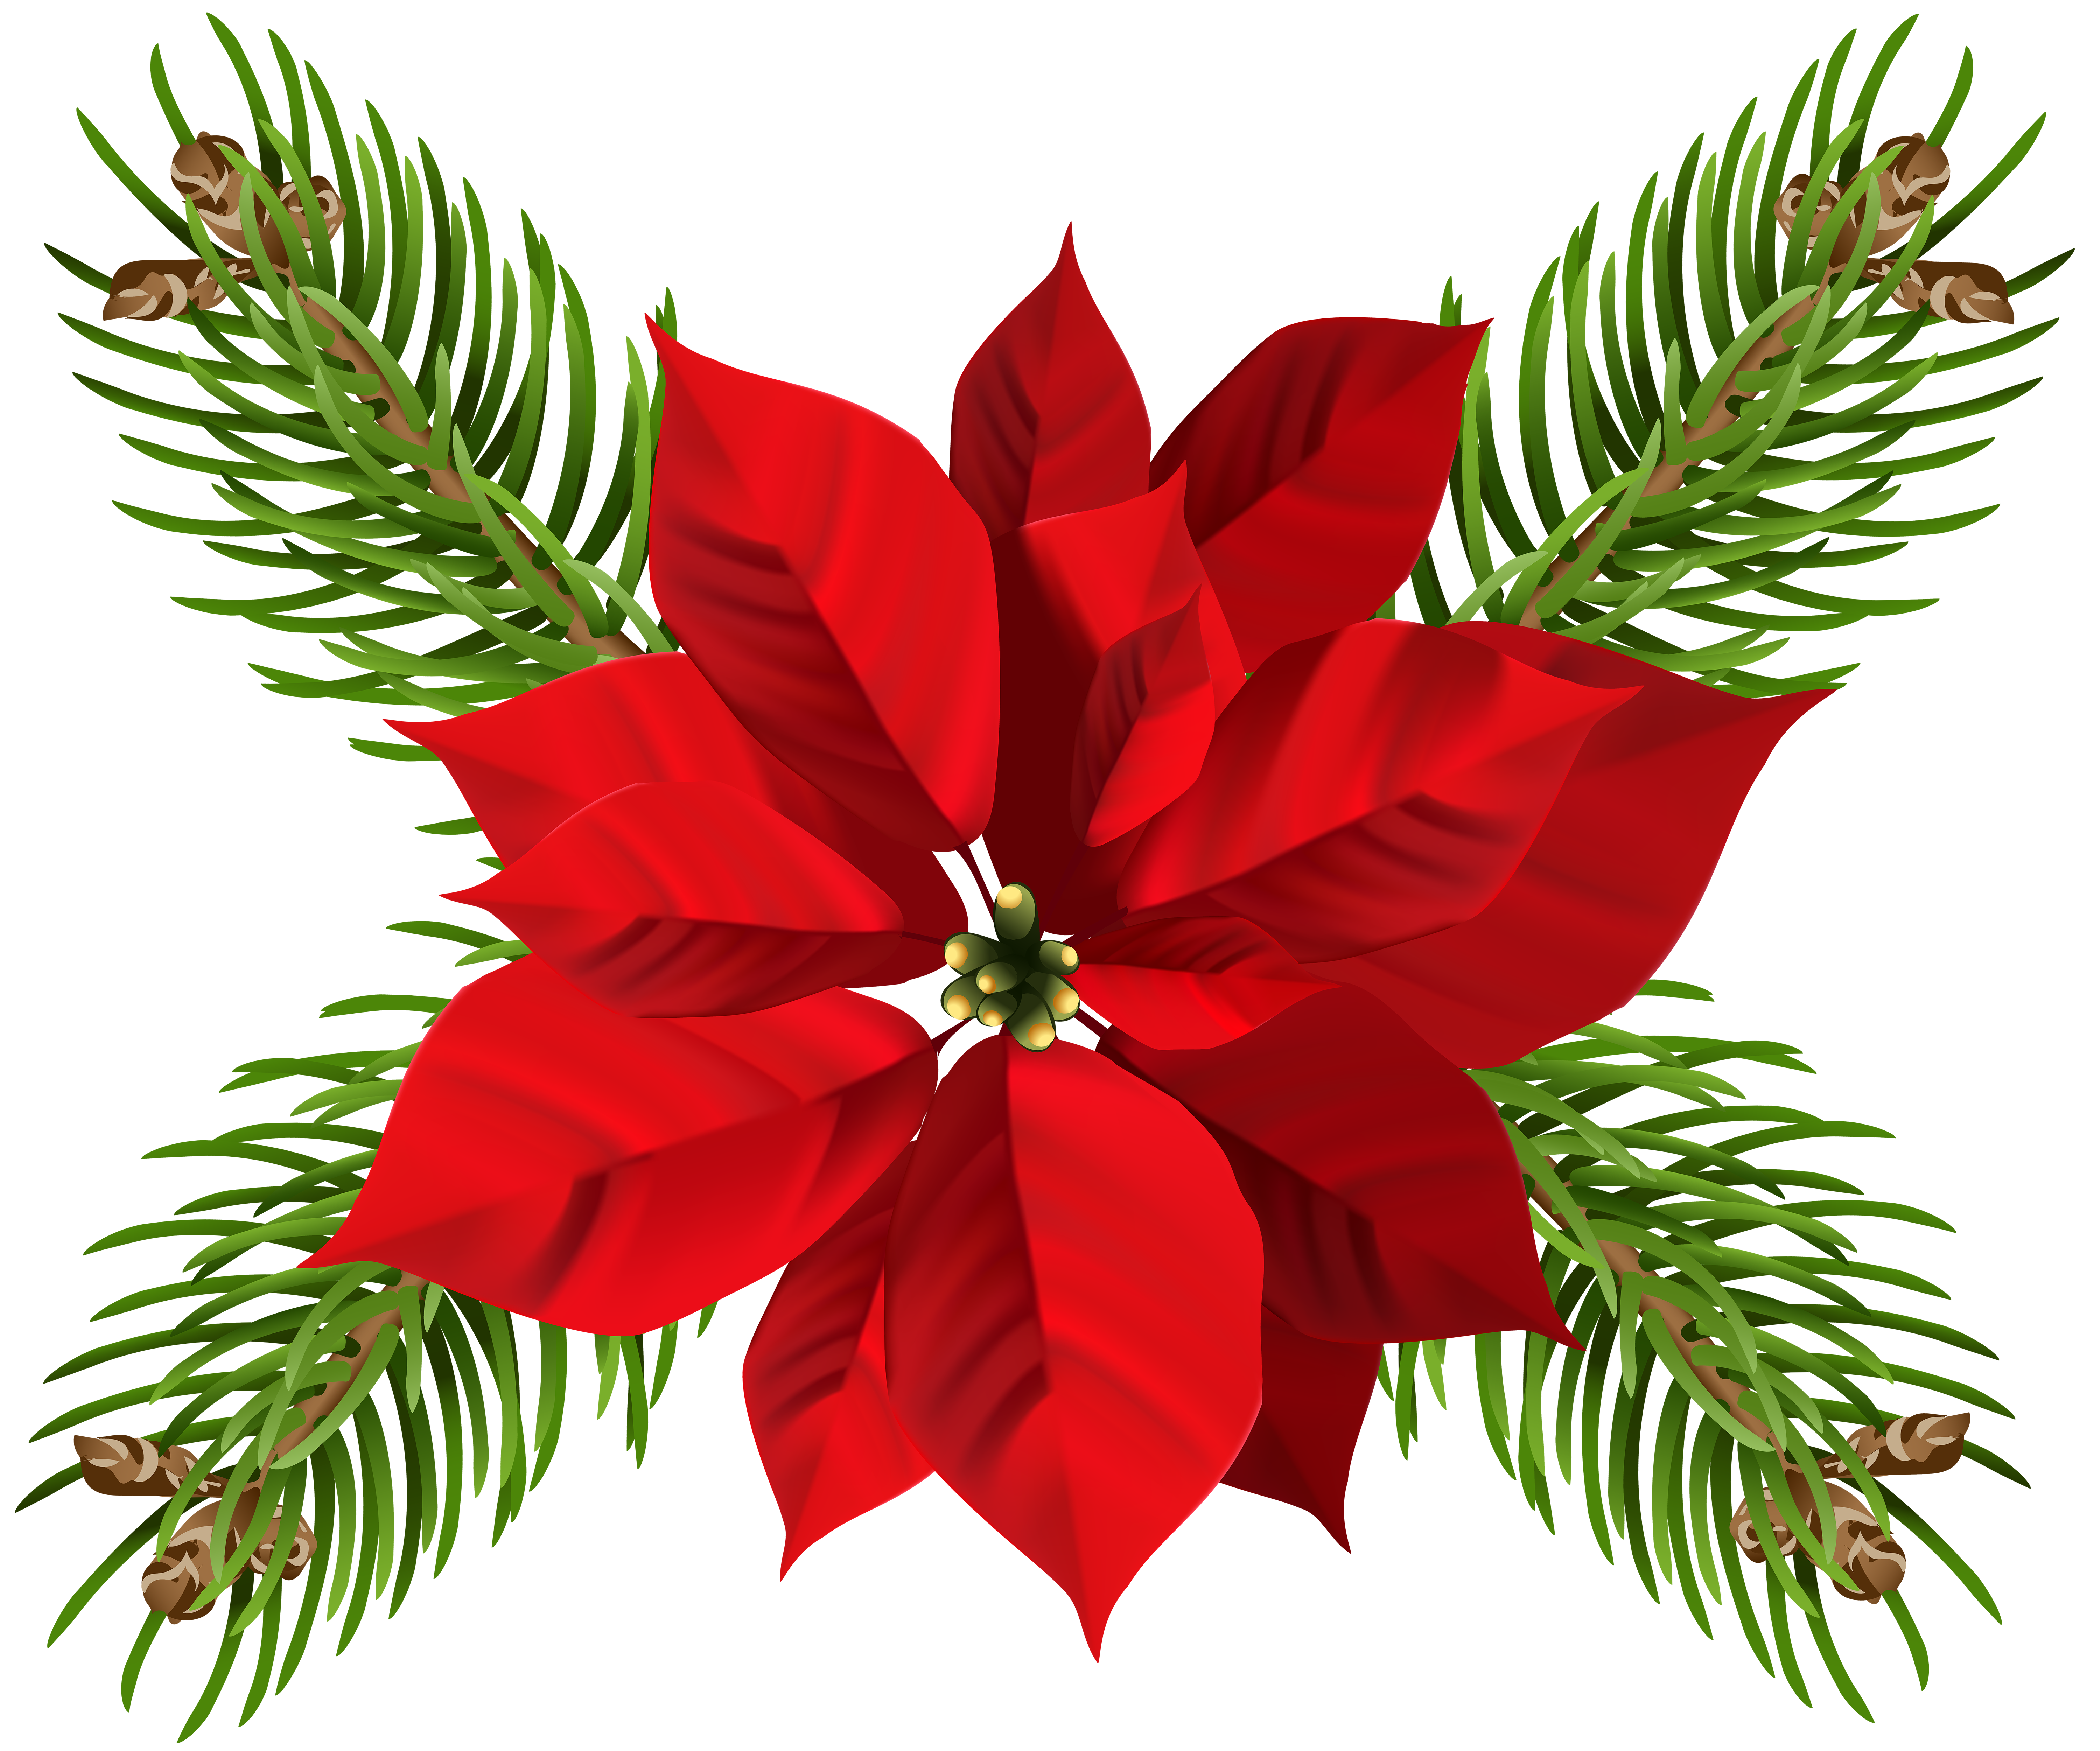 Poinsetta clip christmas tree. Poinsettia clipart at getdrawings